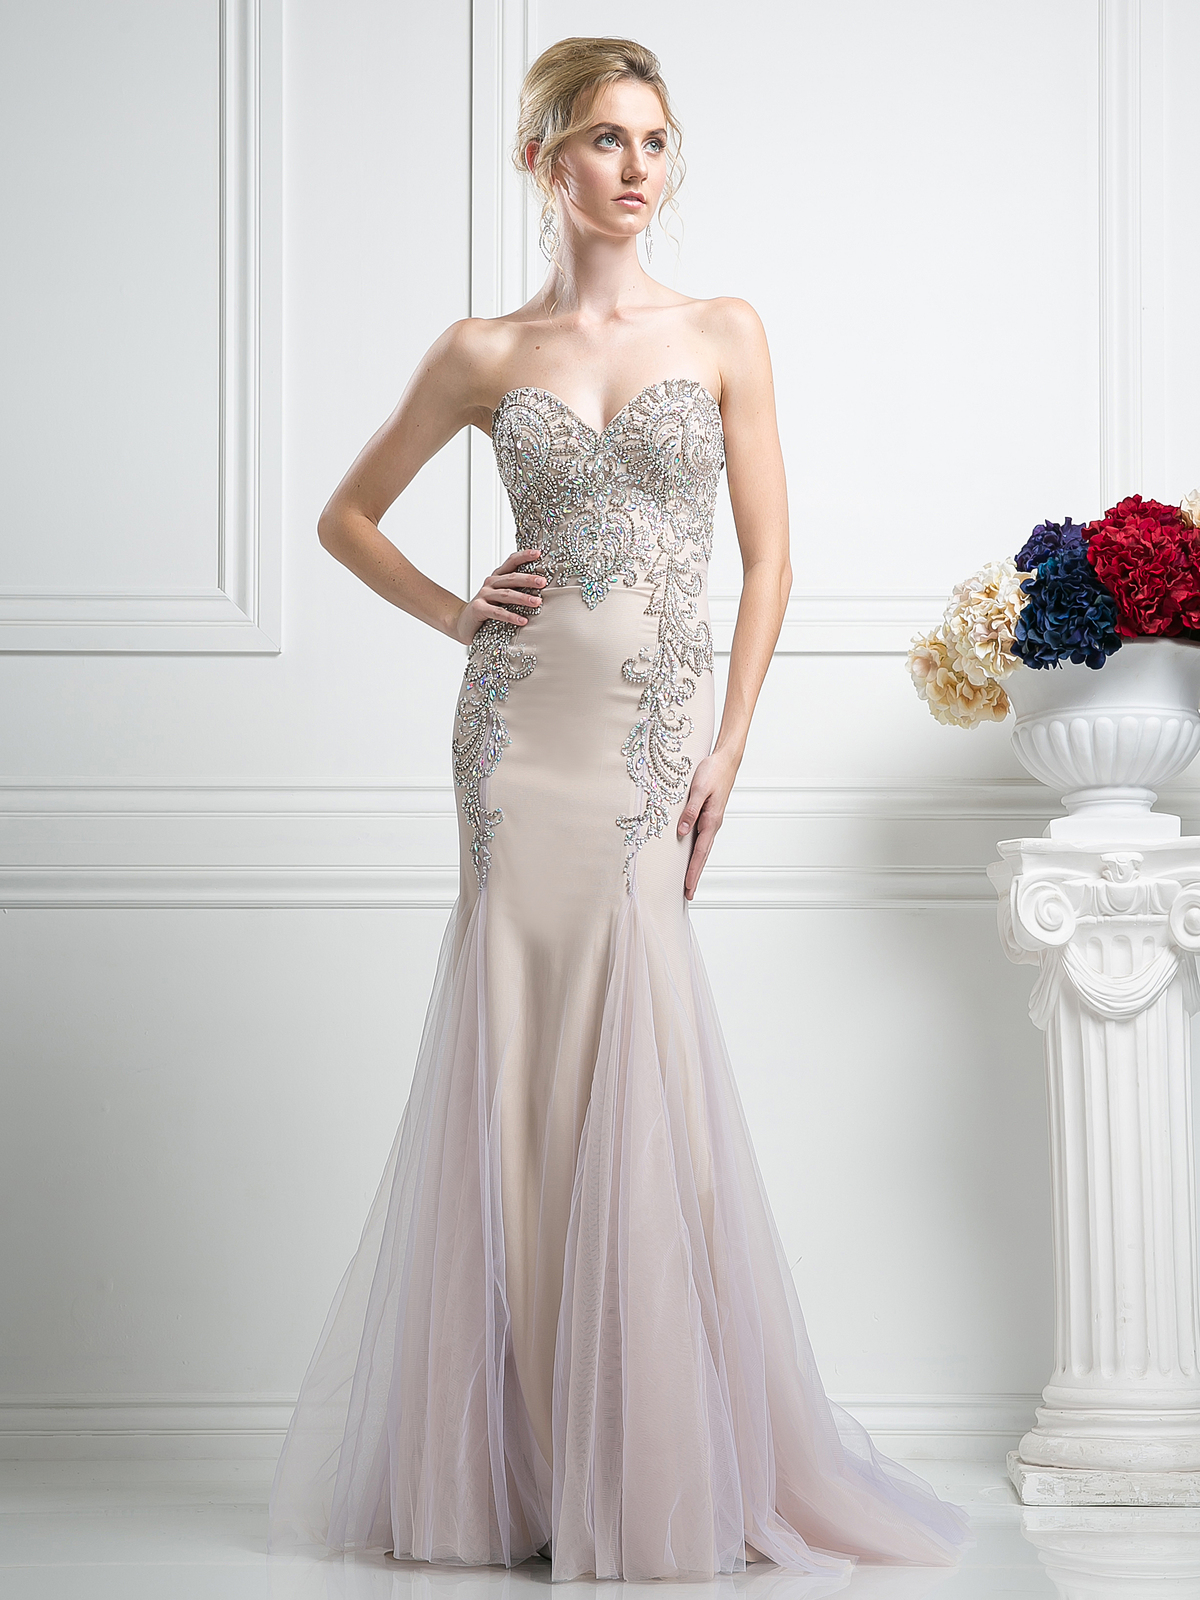 FY F501 Sweetheart Beaded Prom Gown With Godet Hem